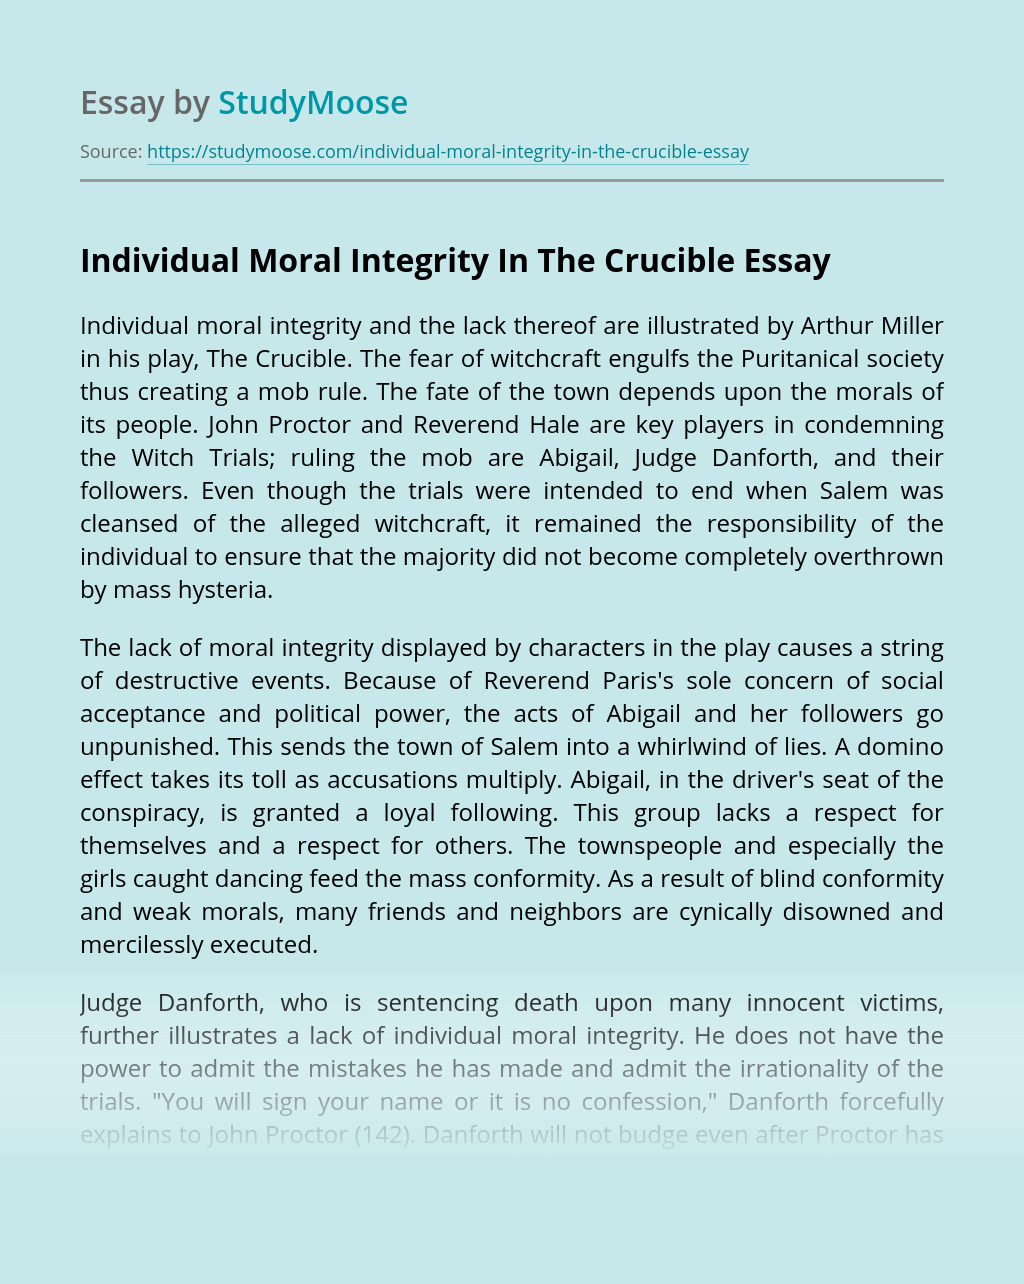 Individual Moral Integrity In The Crucible